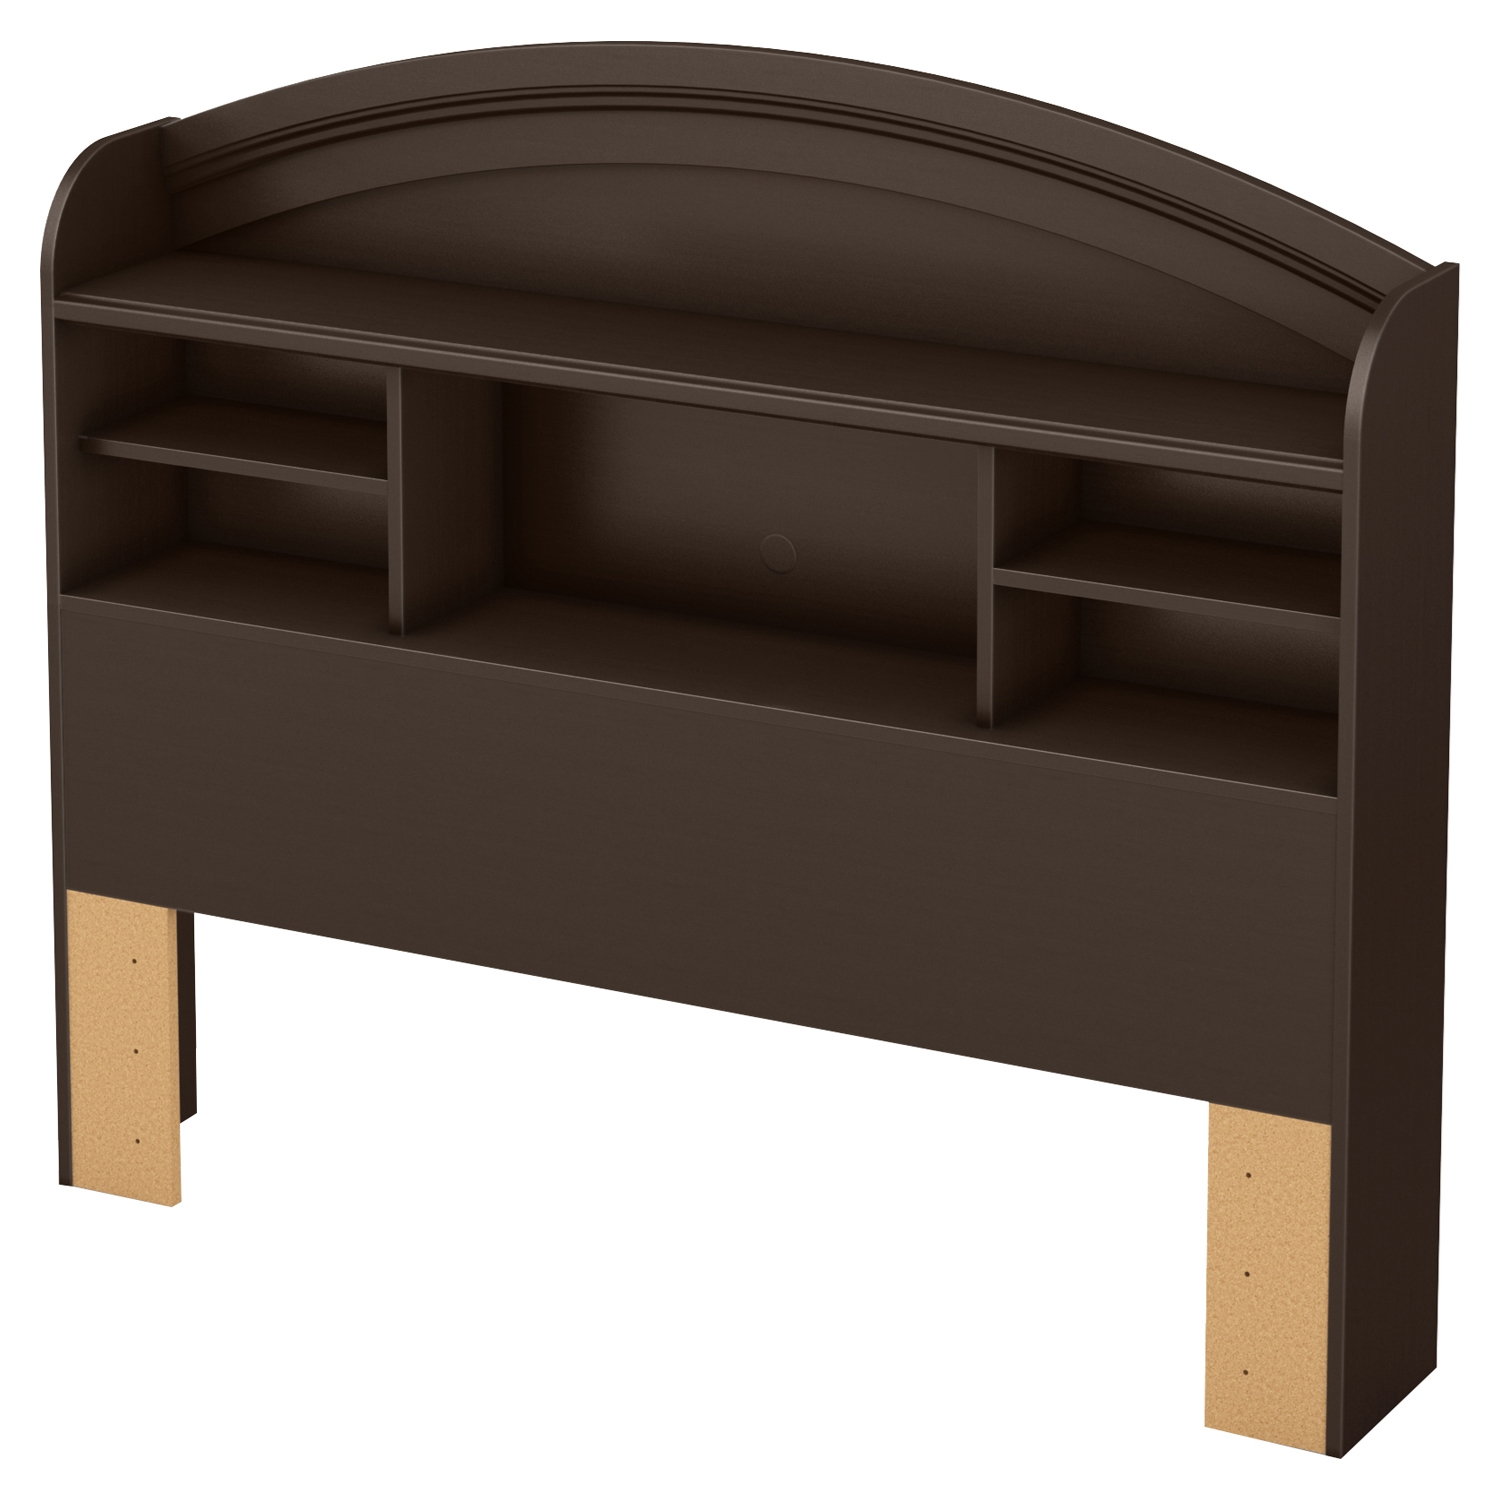 Morning Dew Full Bookcase Headboard - Chocolate - SS-9016093